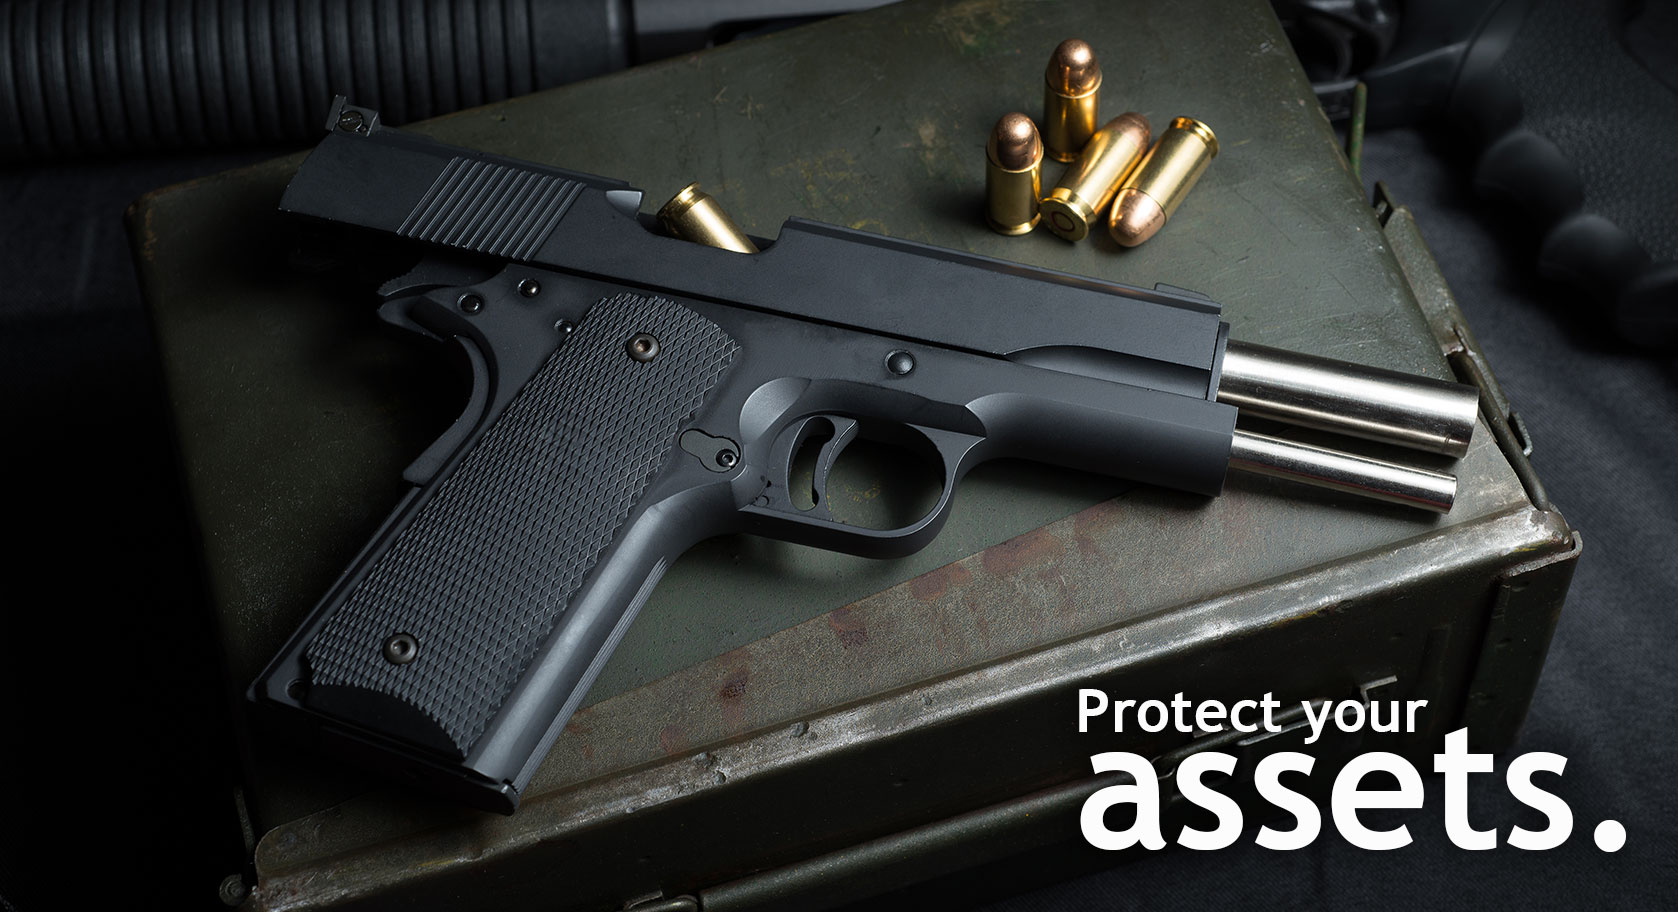 keep track of guns with the home insurance inventory app